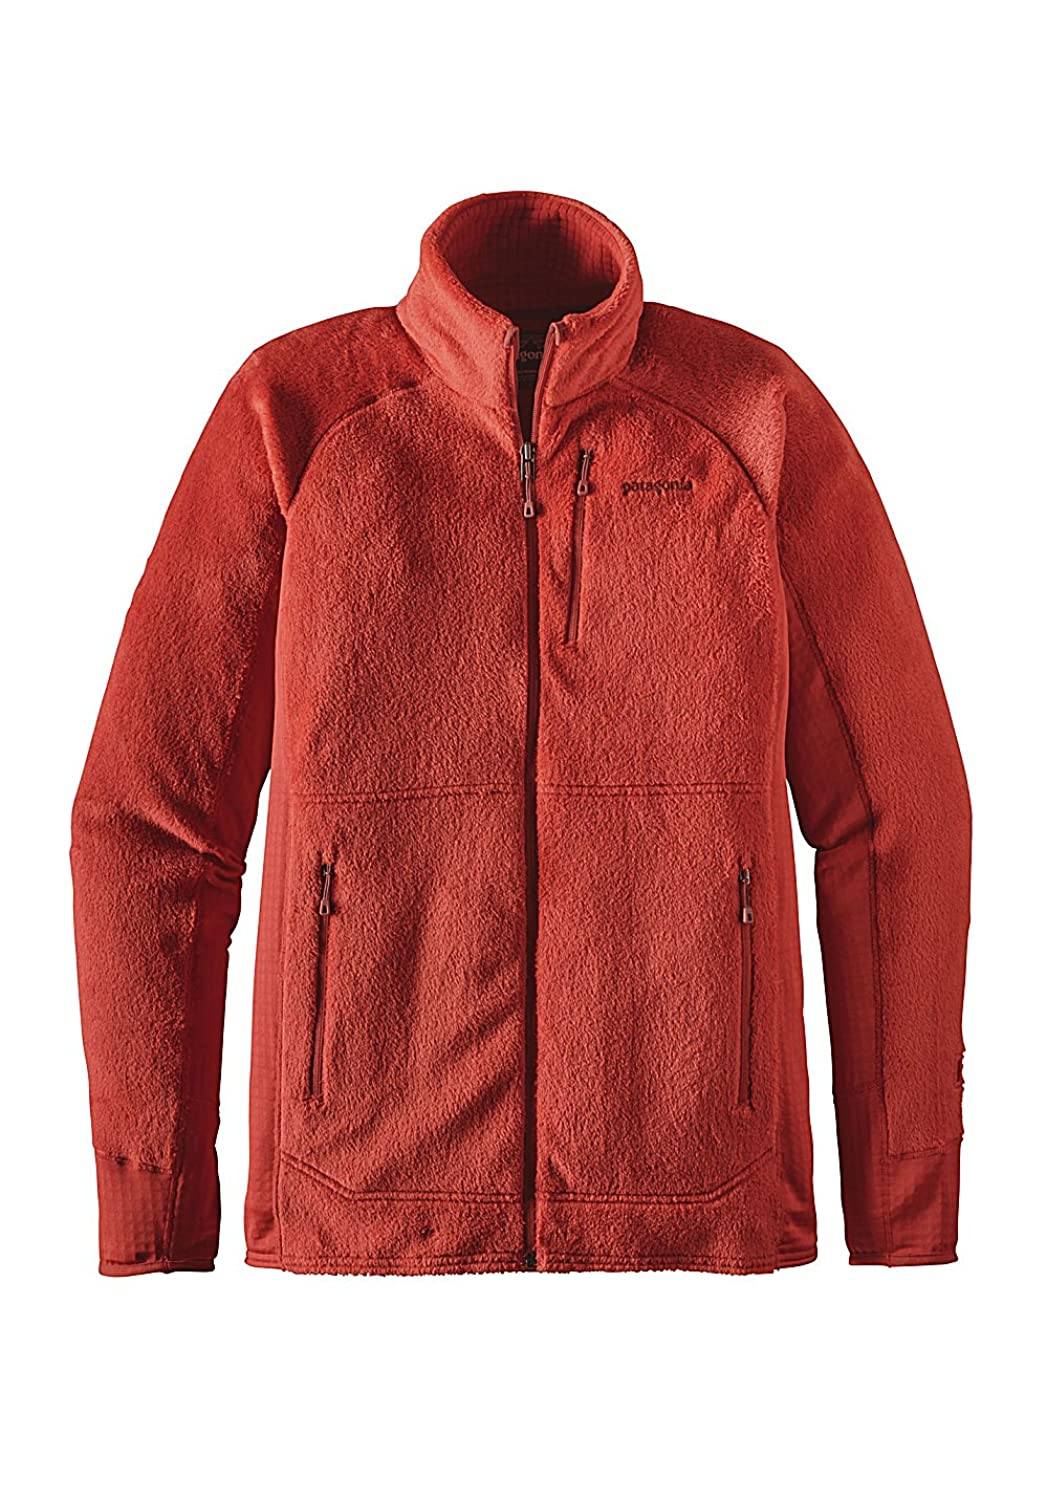 Patagonia Damen Fleecejacke R2 Men'